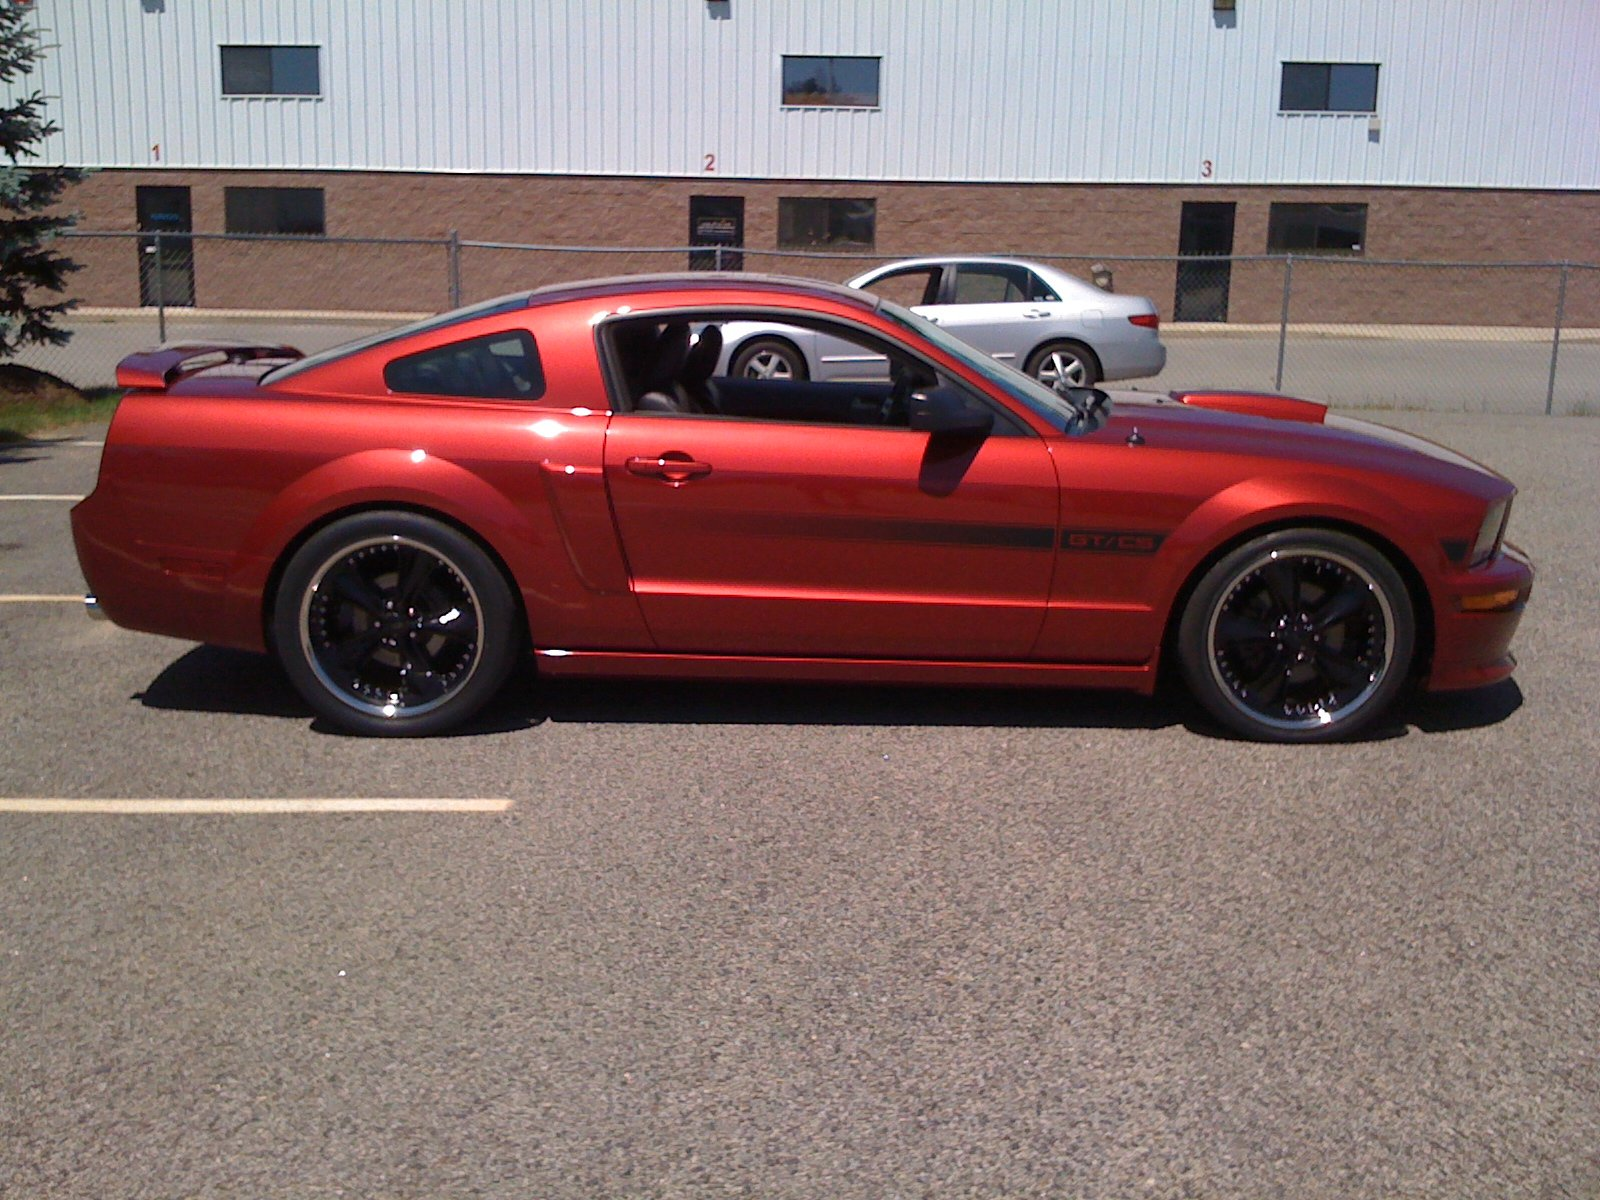 2005 2008 s197 ford mustang picture thread ford mustang. Black Bedroom Furniture Sets. Home Design Ideas